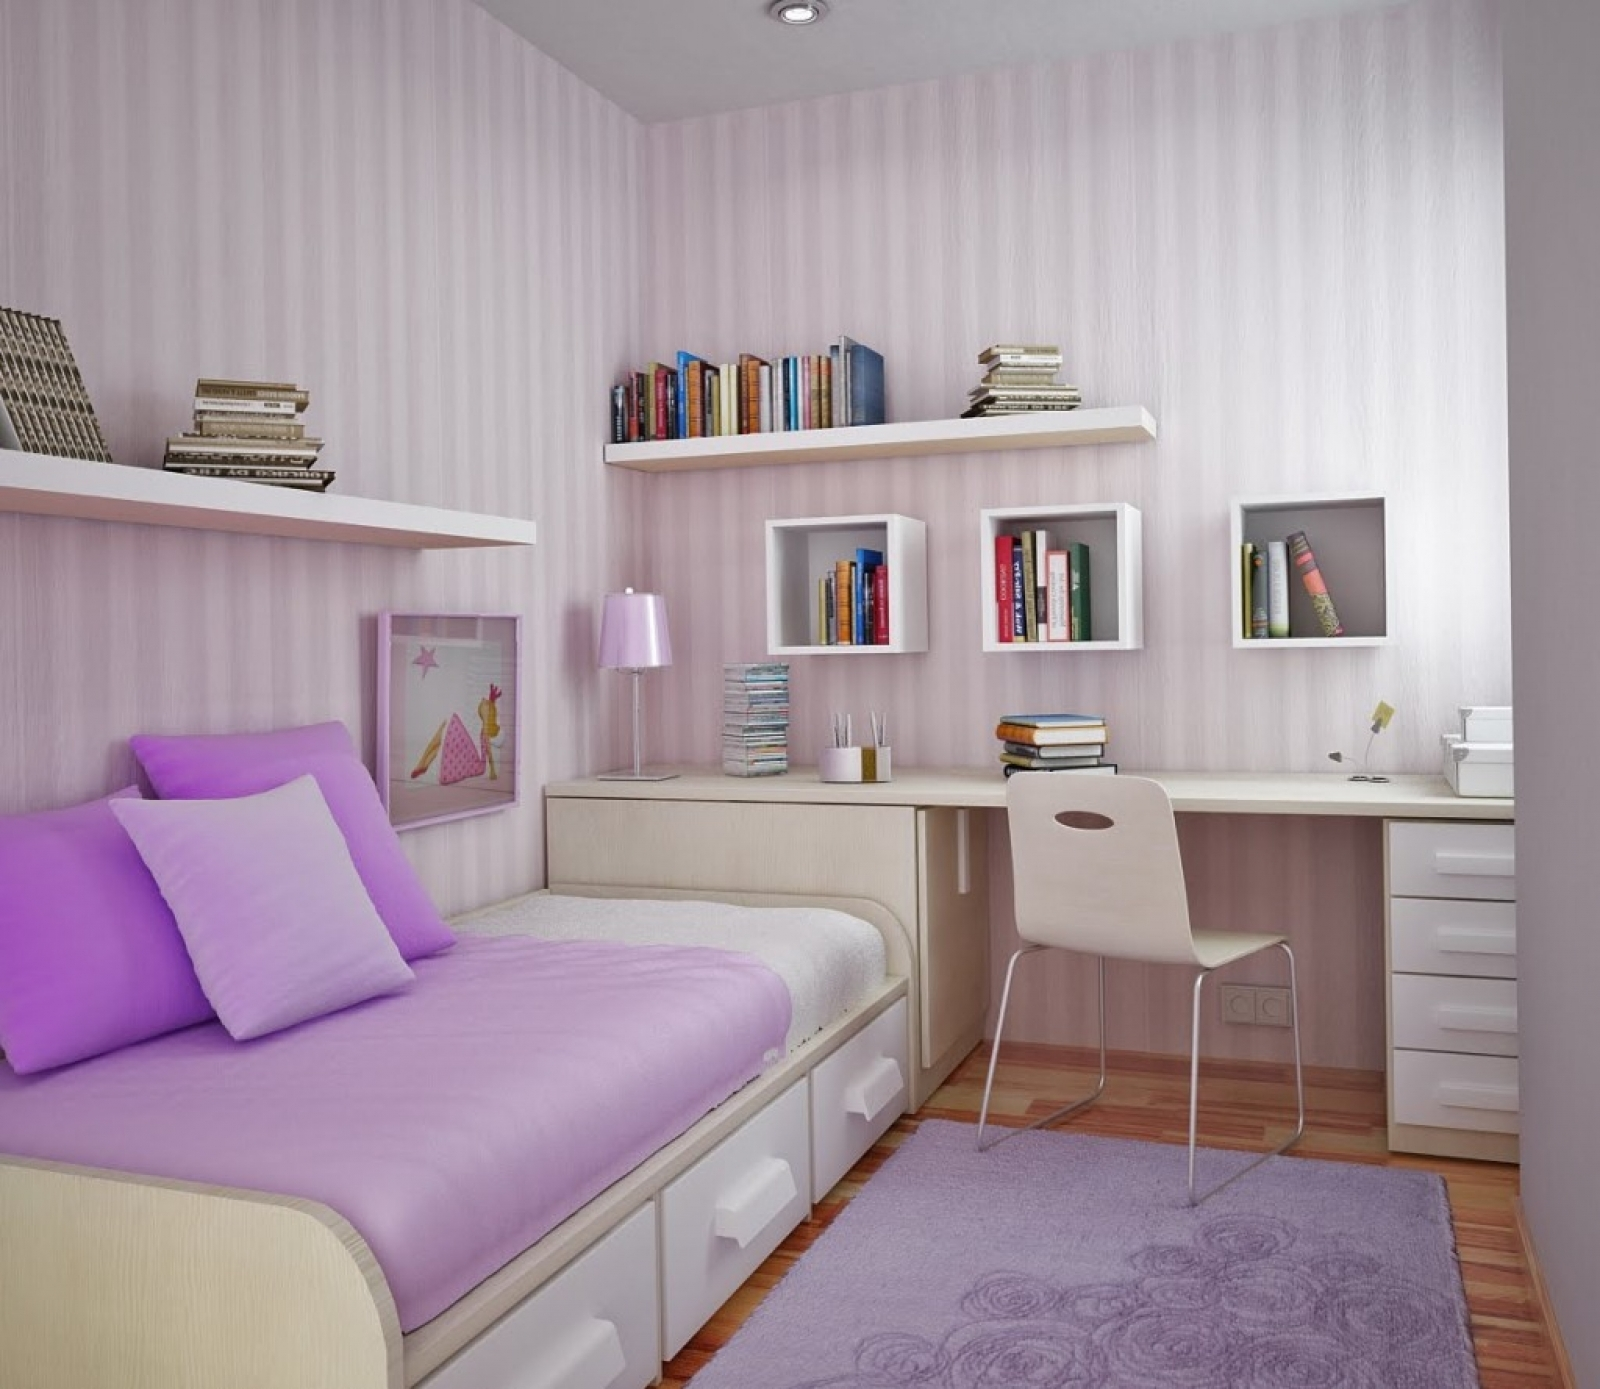 Decorating Ideas In Small Endearing Bedroom Ideas Small Spaces